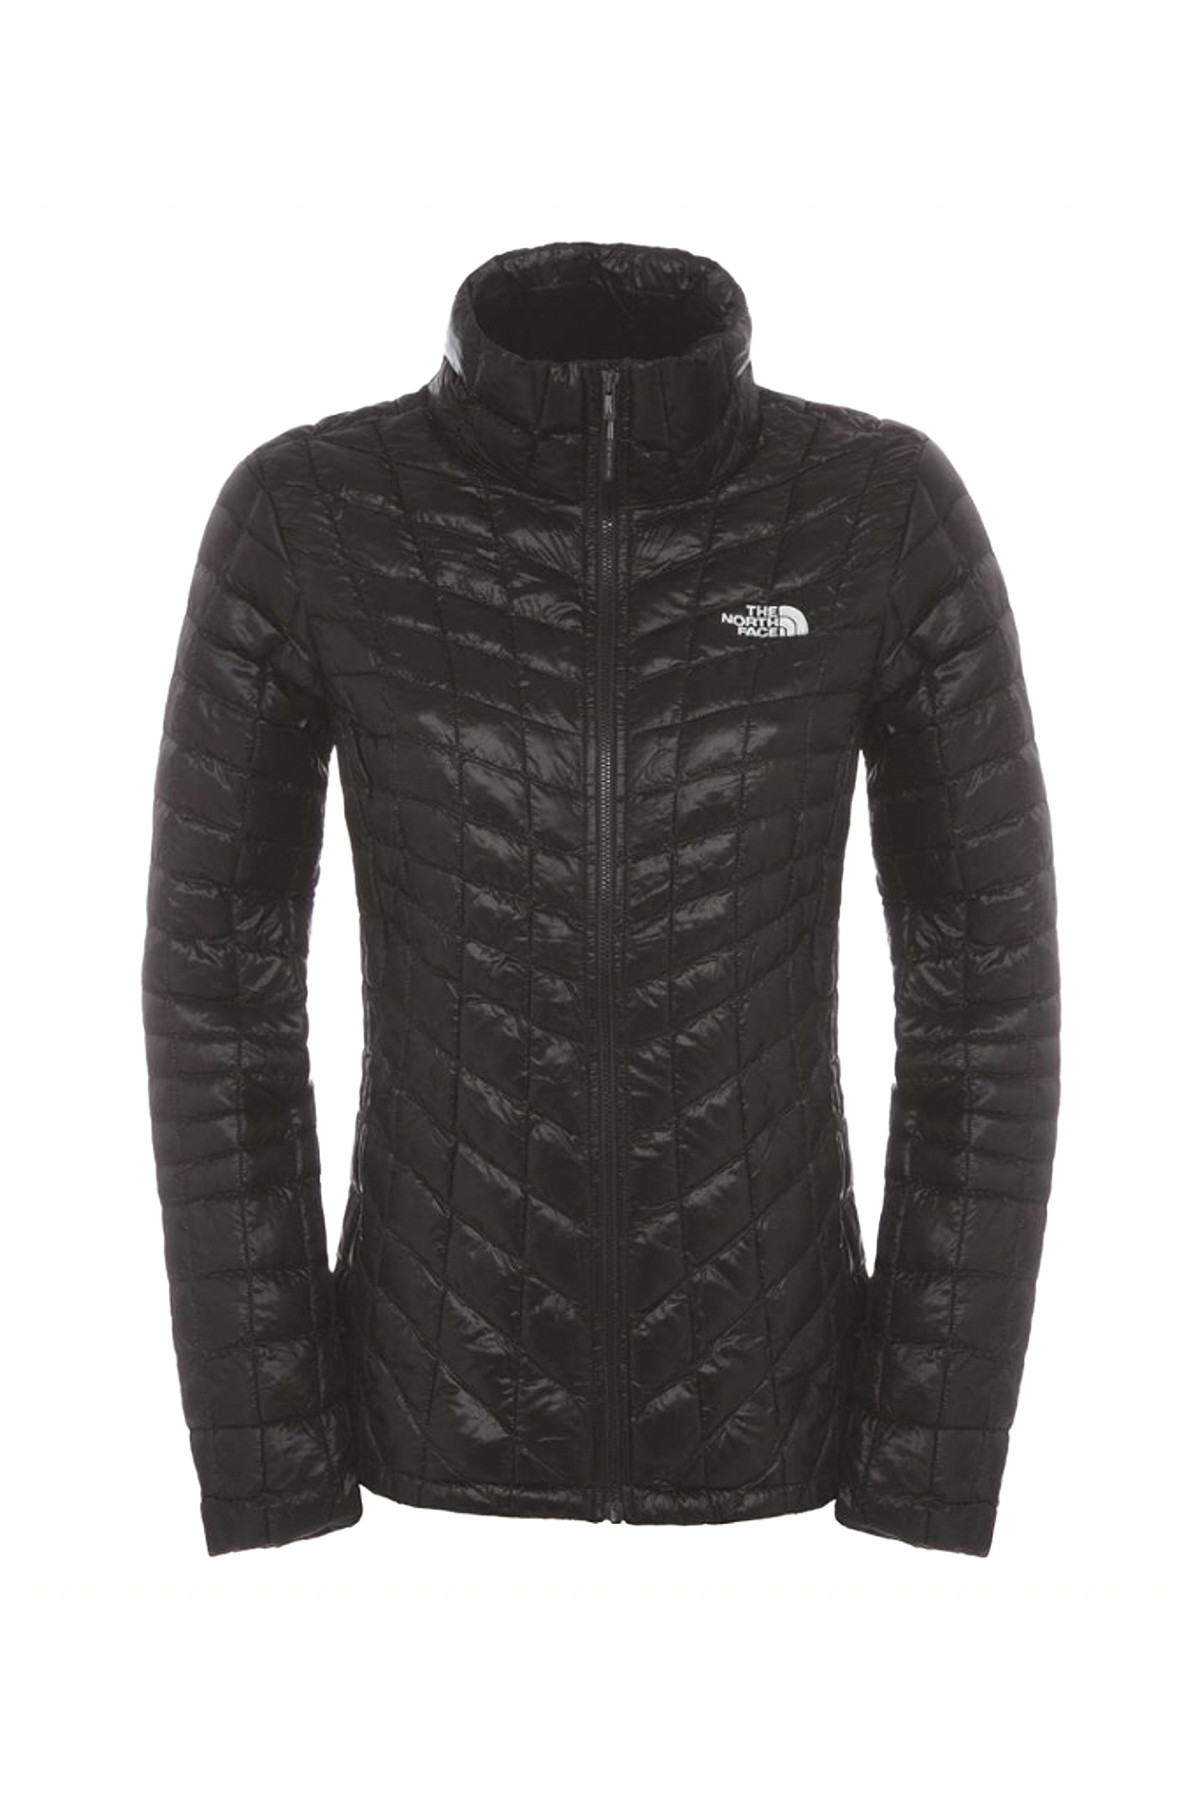 The North Face The North Face – W Thermoball Jacket Eu Bayan Mont – 799.2 TL